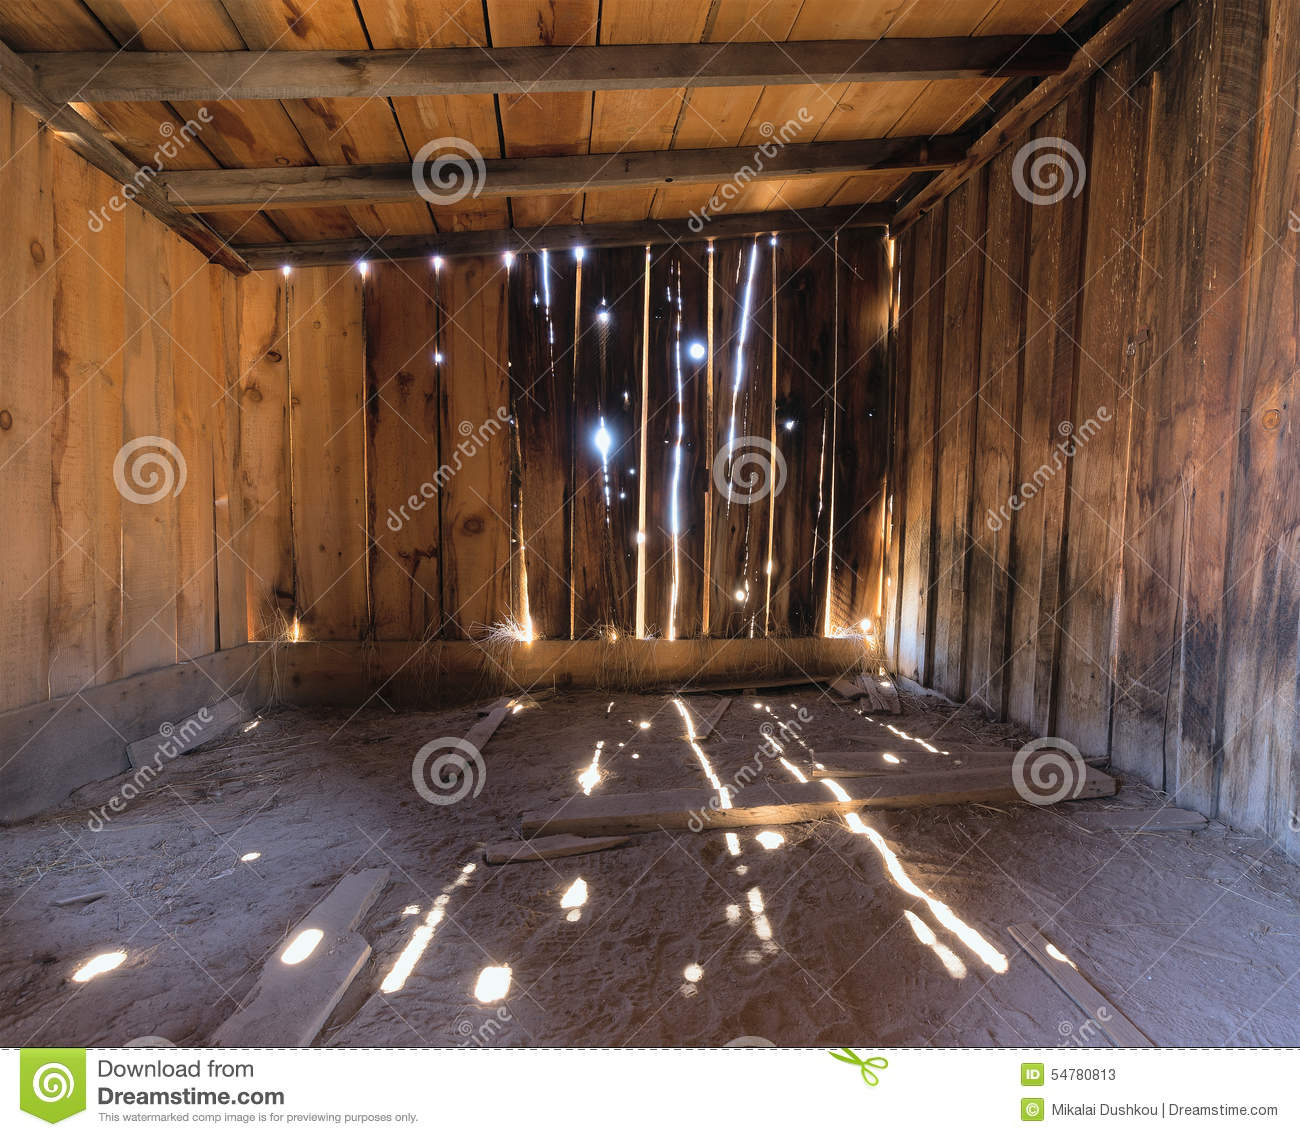 Interior Of A Rustic Old Wooden Barn Stock Photo Image